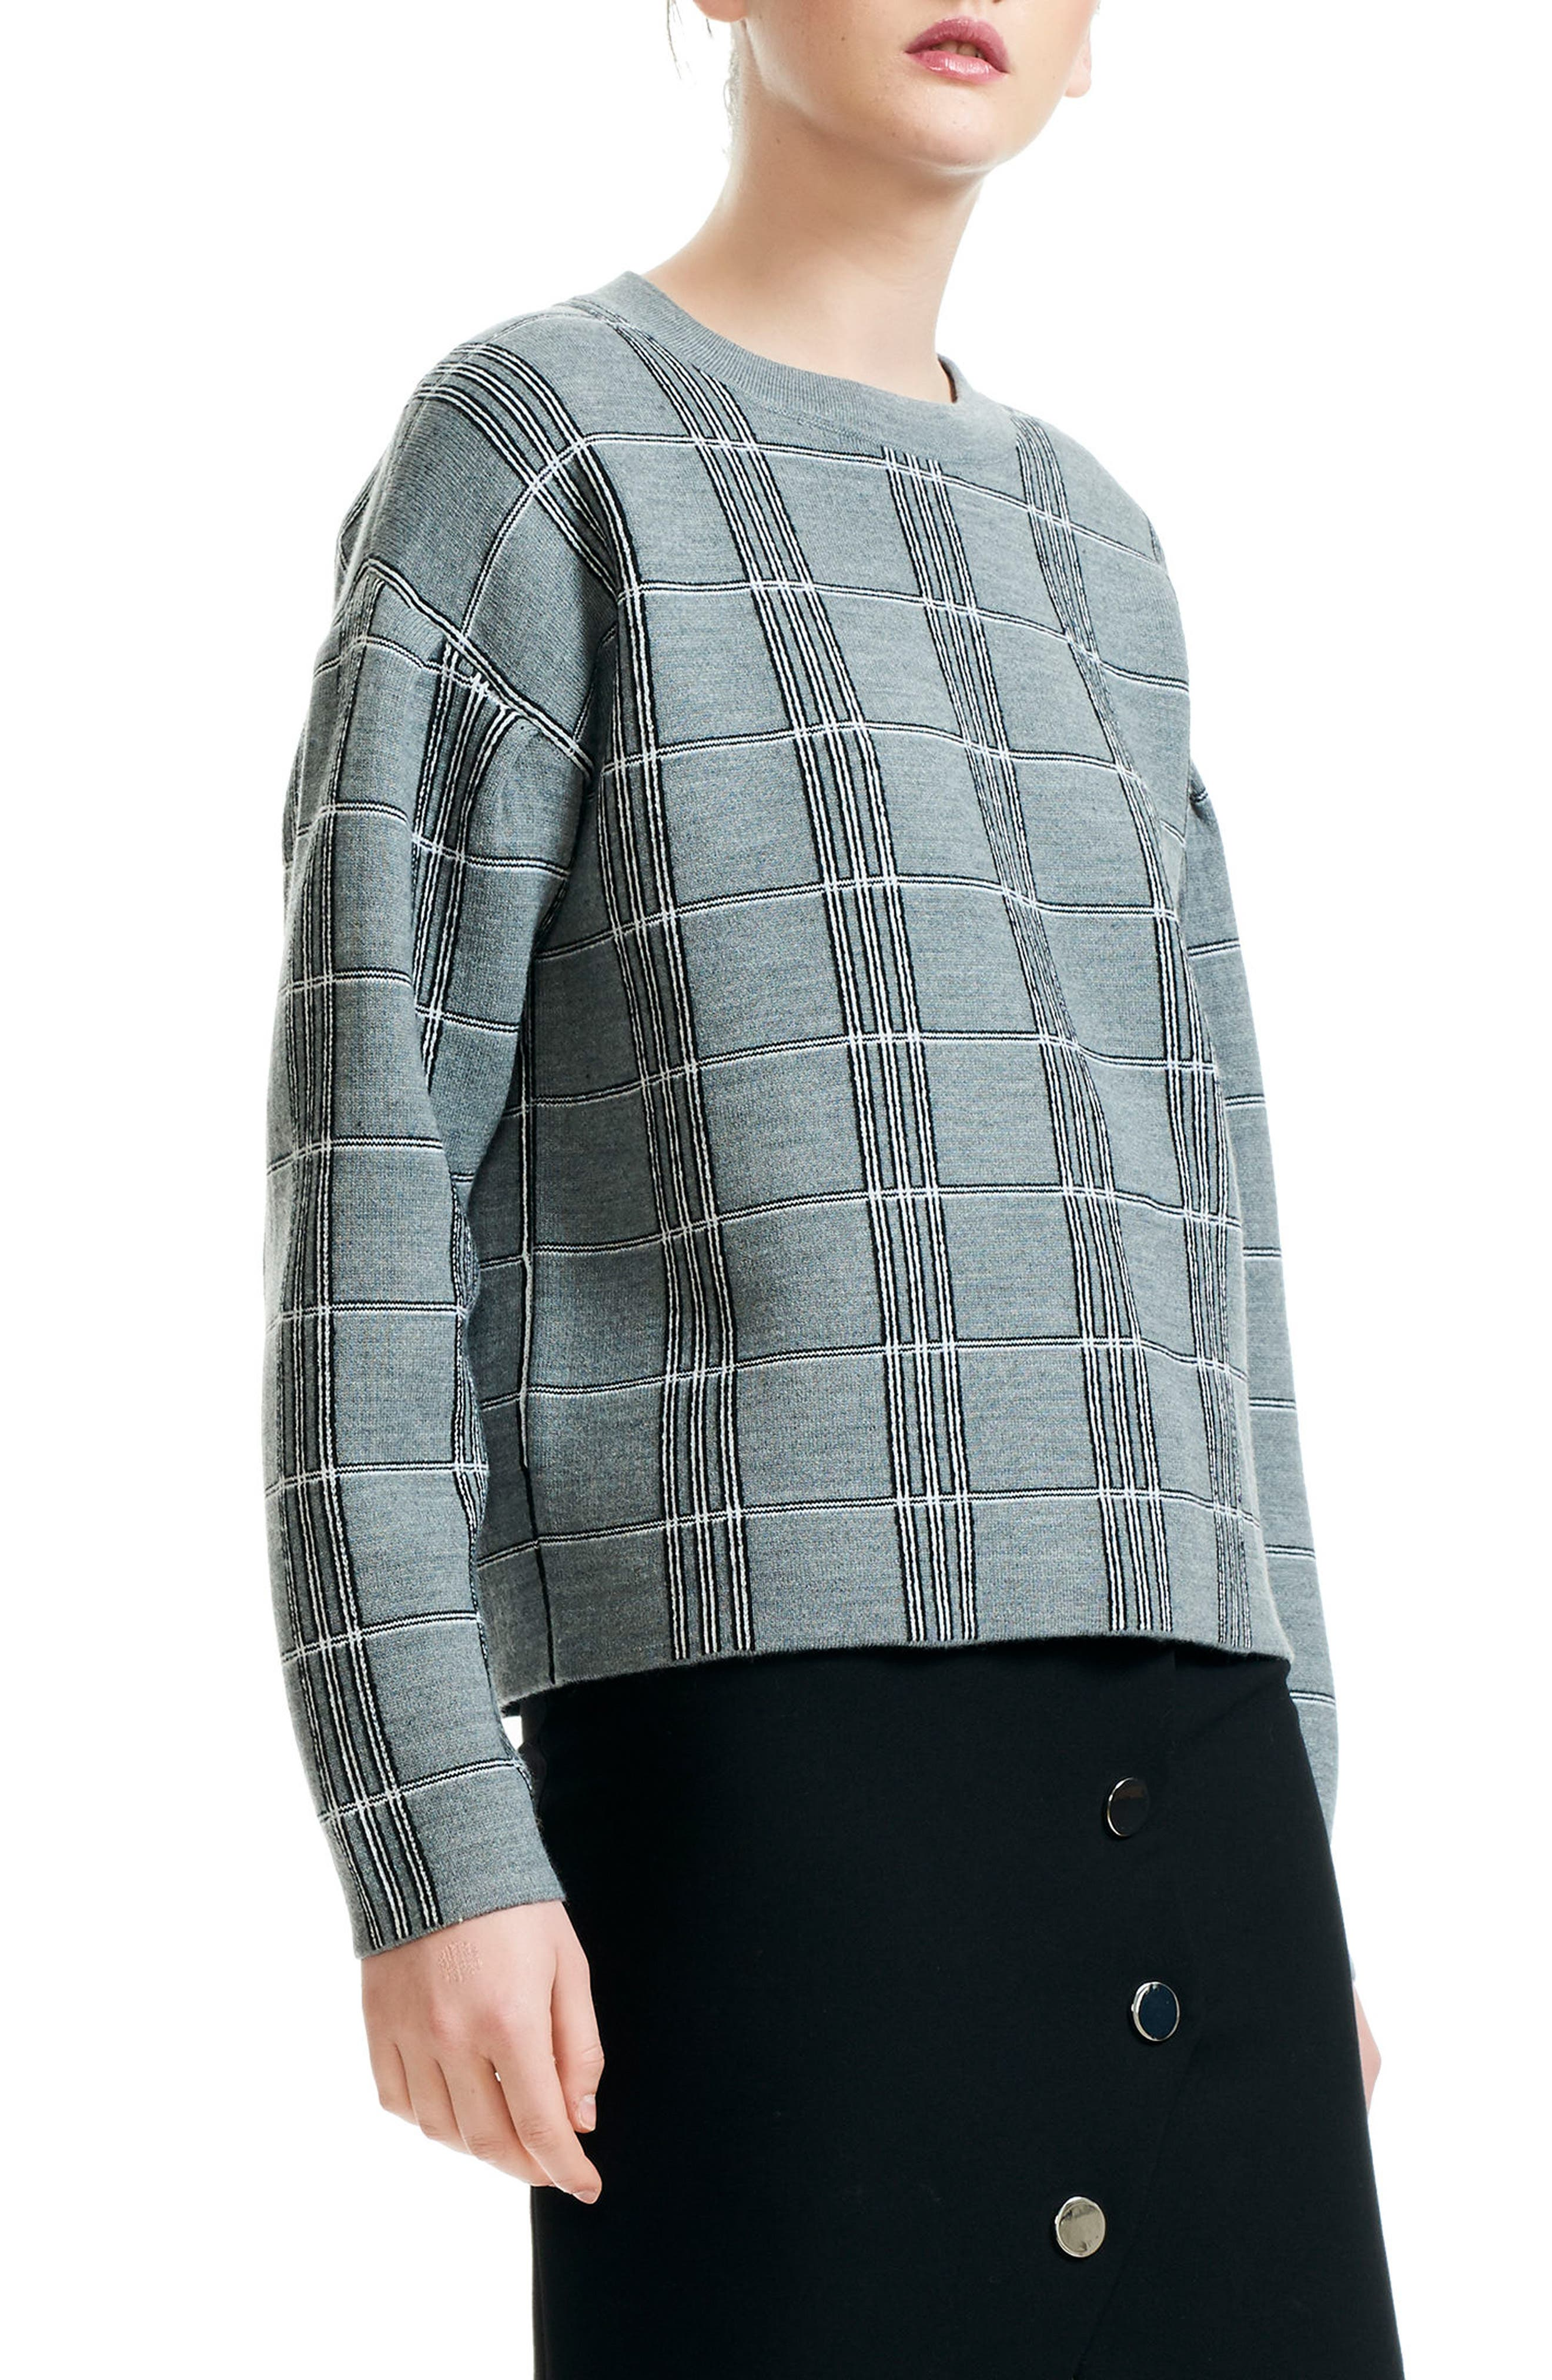 Mission Grid Pattern Wool Blend Sweater,                         Main,                         color, 061